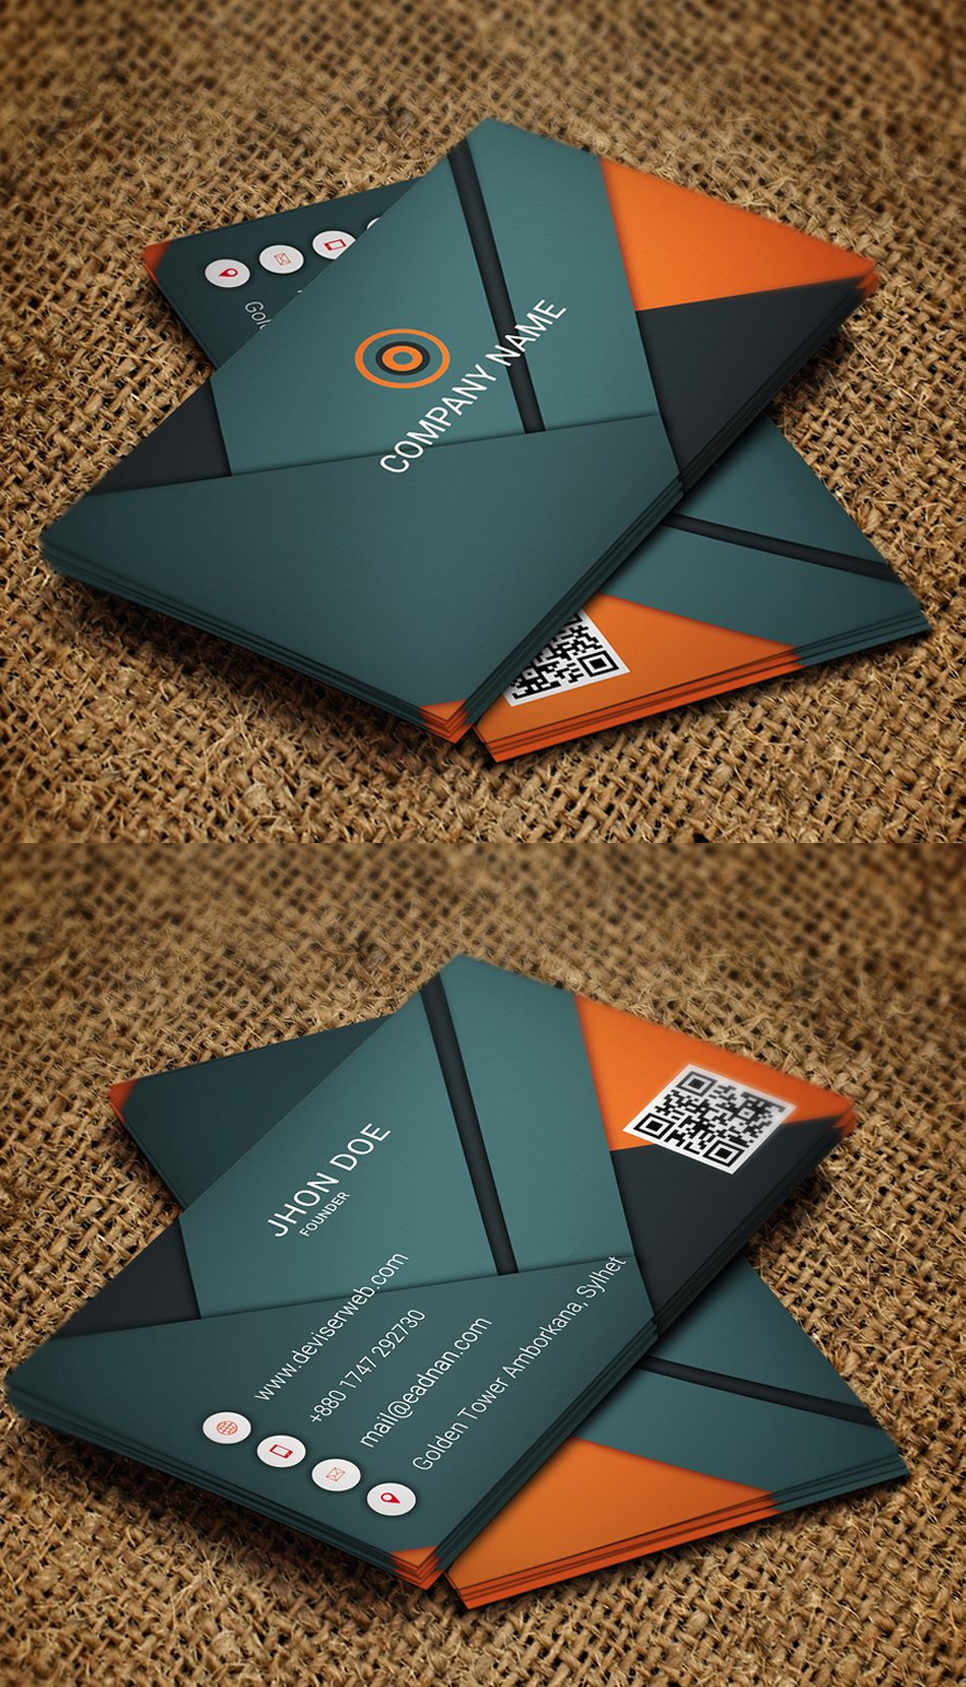 Android Lollipop Business Card Photography Business Cards Graphic Design Business Card Business Cards Creative